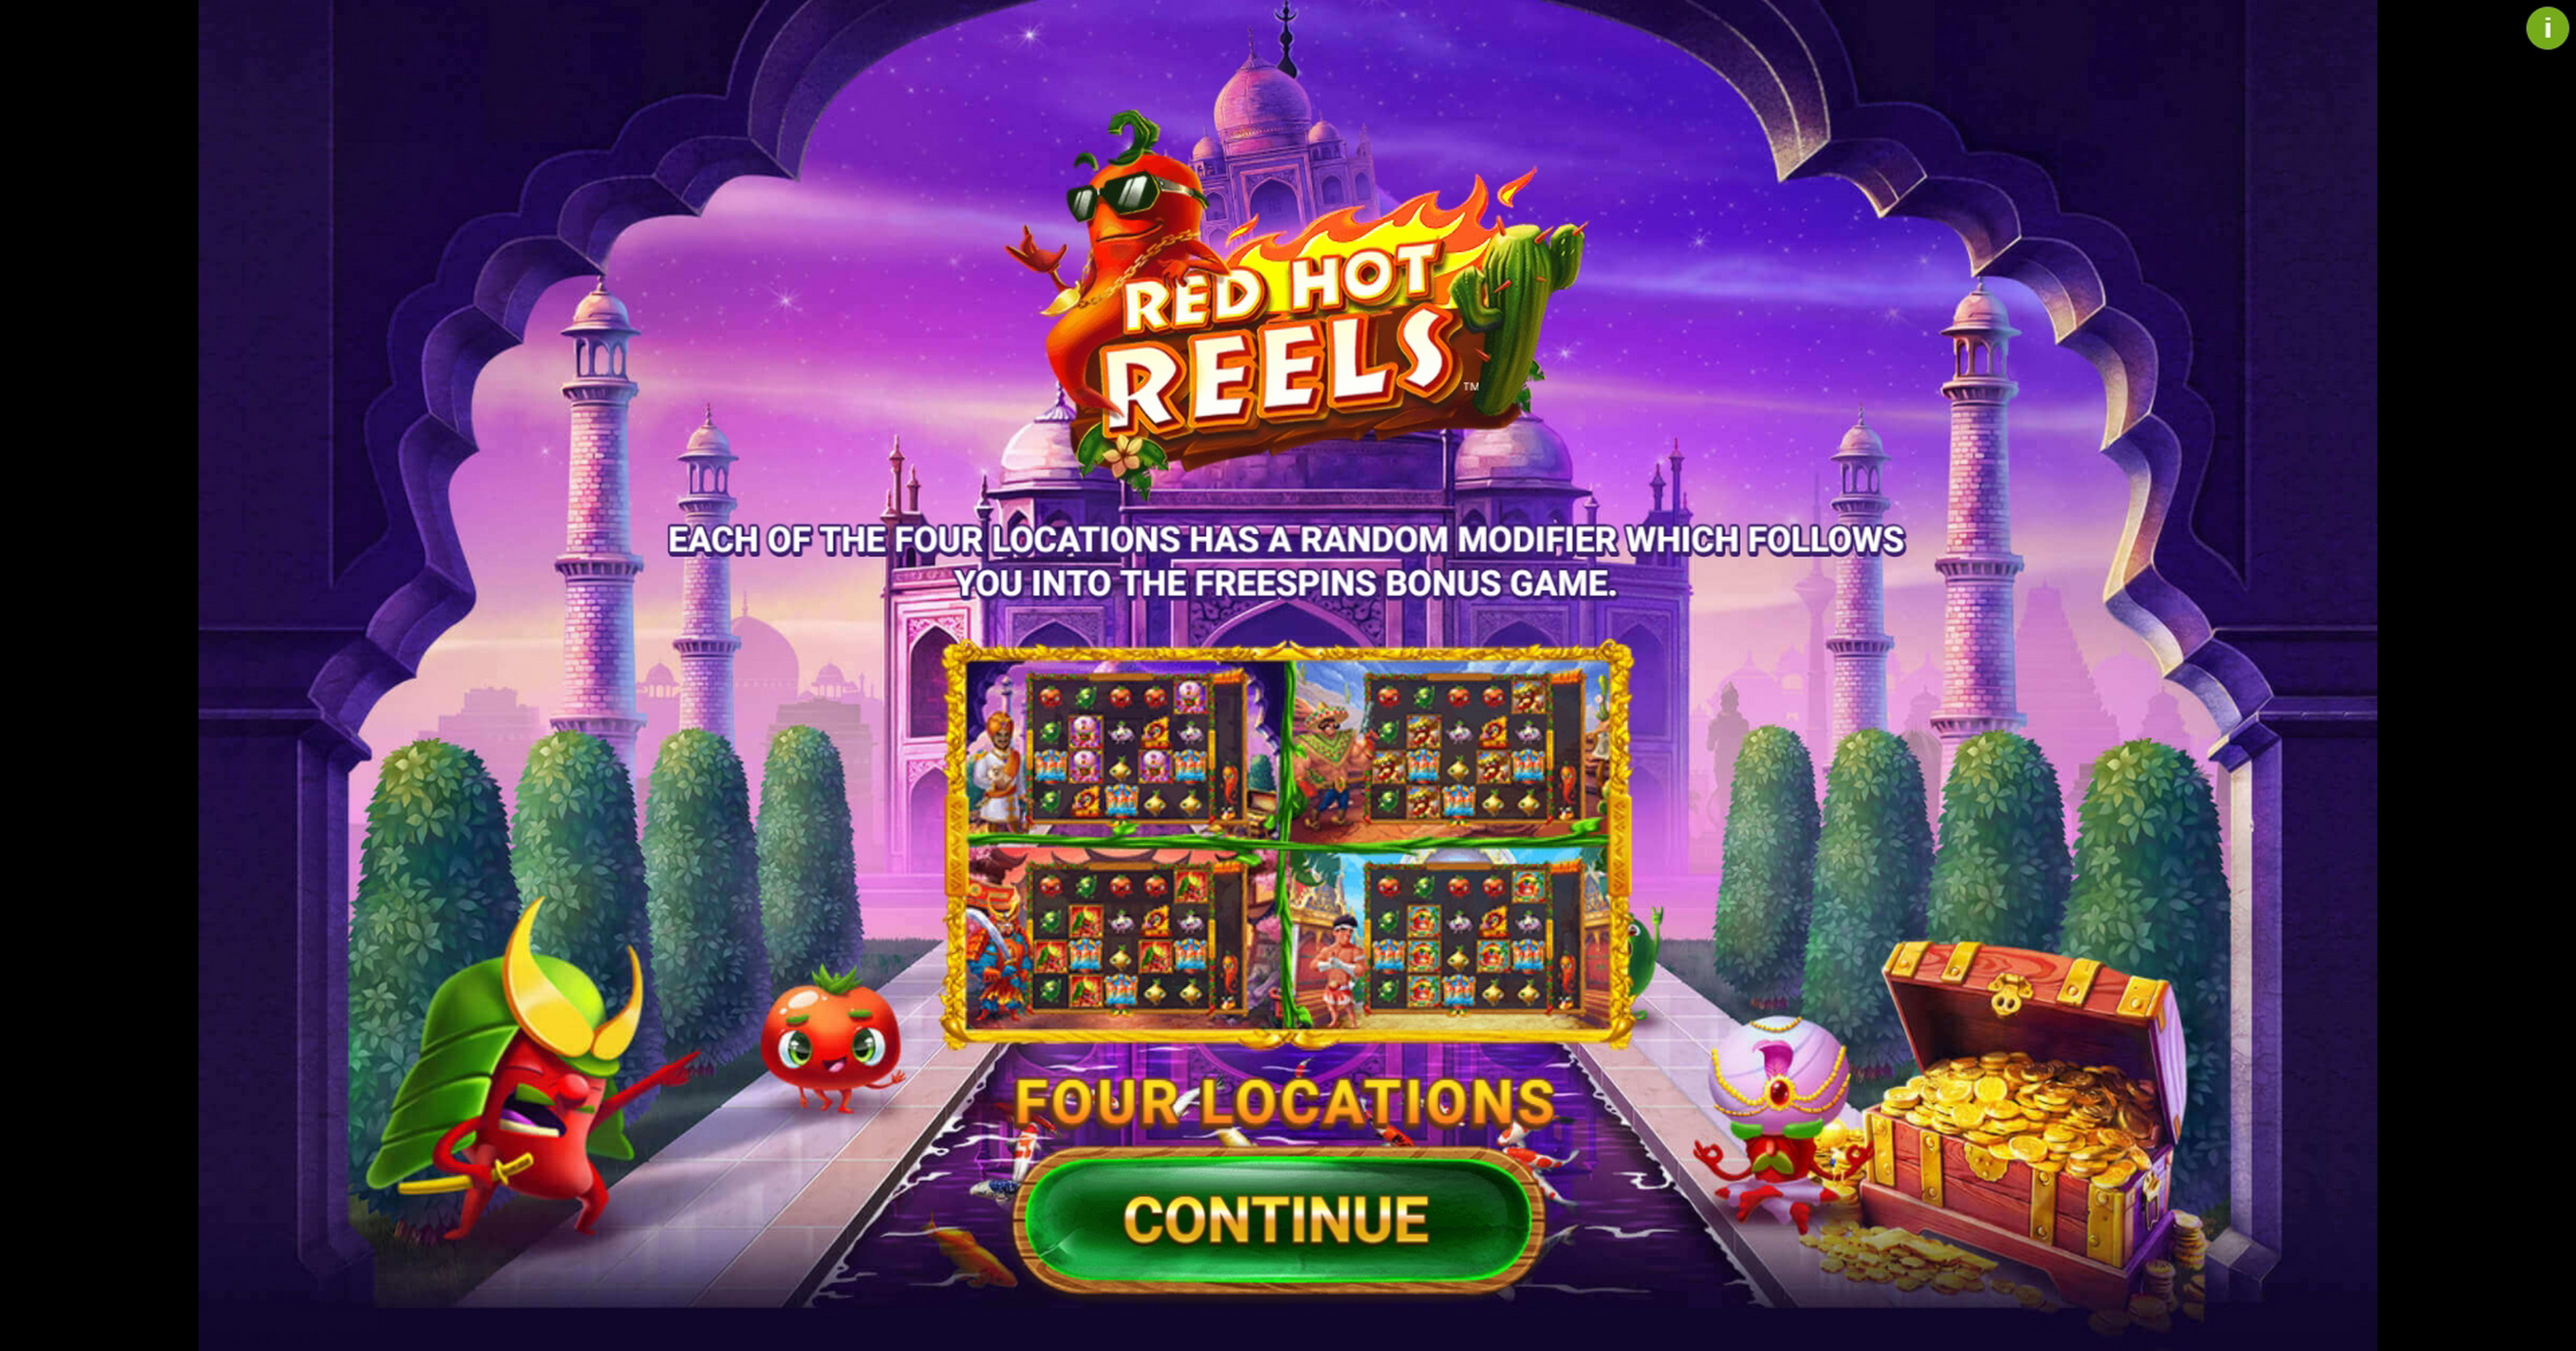 Play Red Hot Reels Free Casino Slot Game by Jade Rabbit Gaming